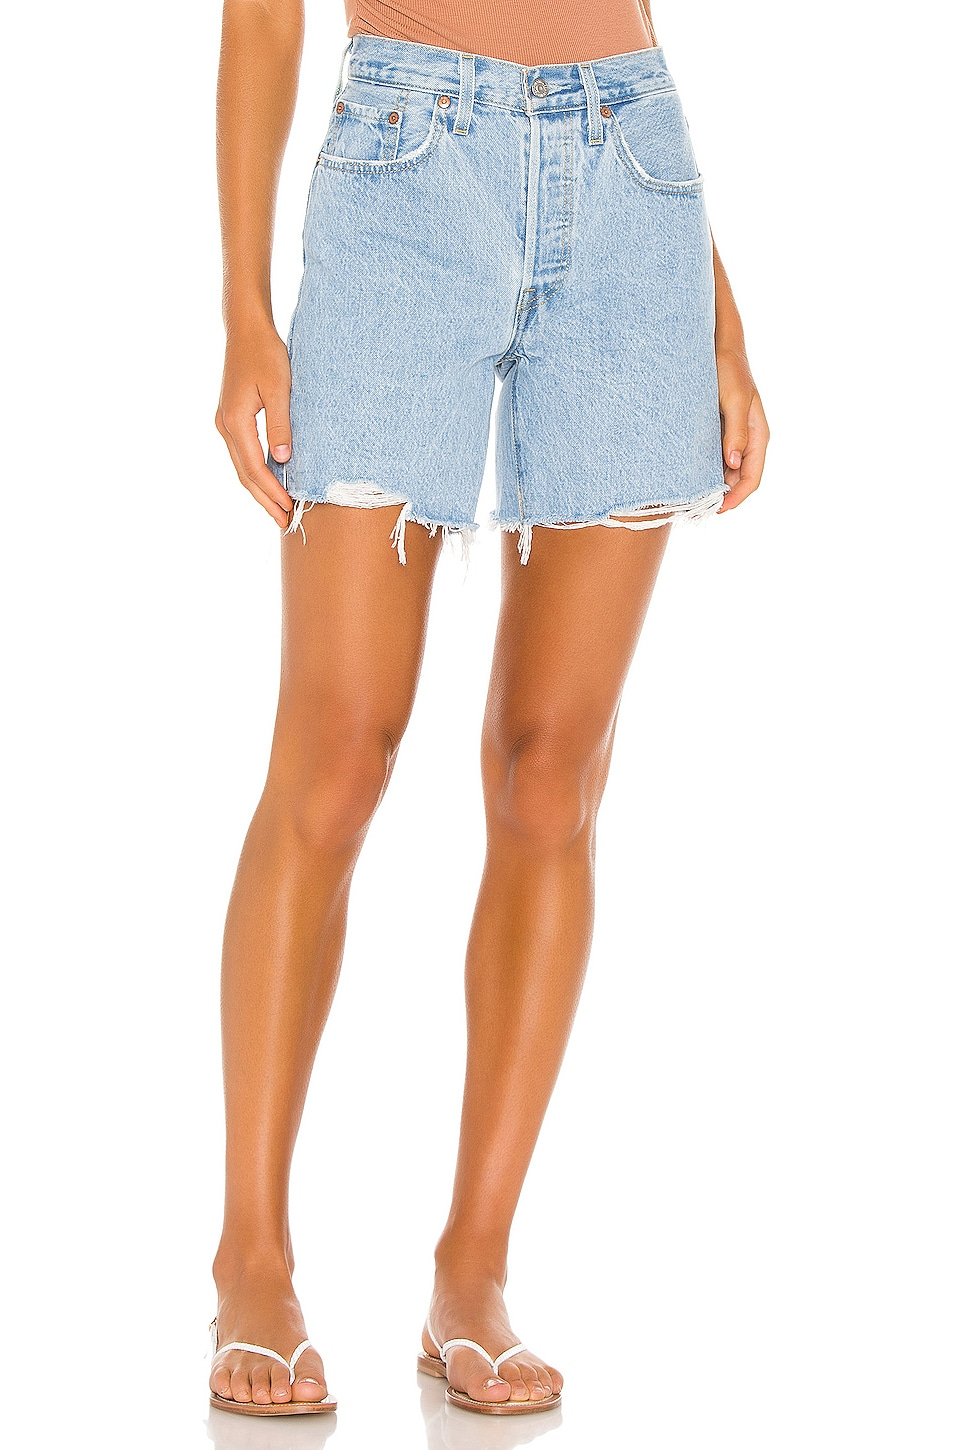 501 Mid Thigh Short             LEVI'S                                                                                                       CA$ 94.58 7